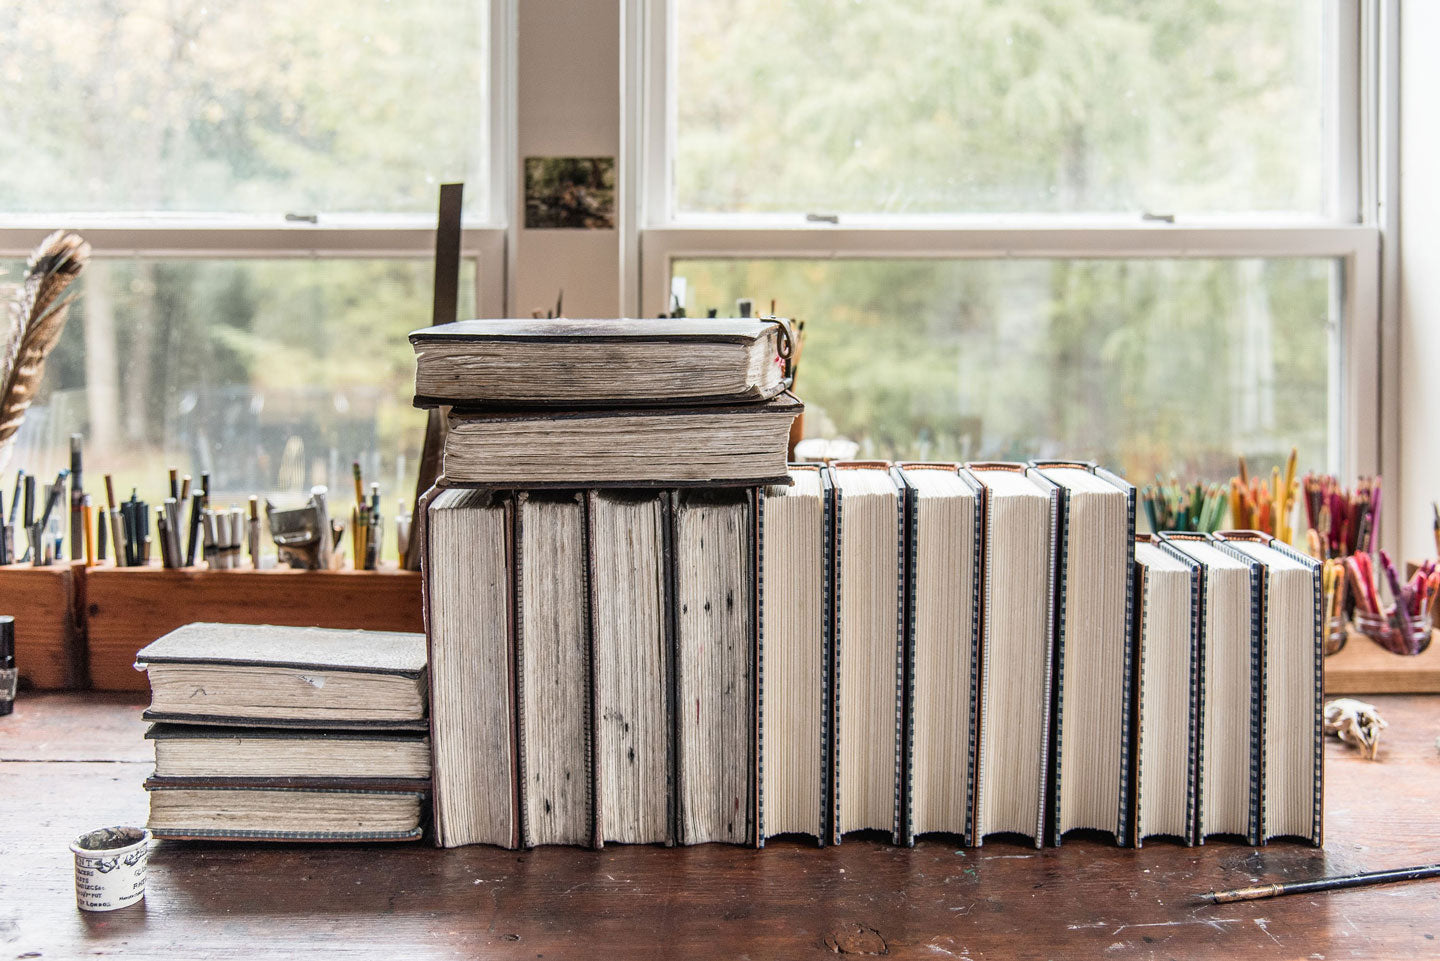 Handbound Leather Journals by Peg and Awl